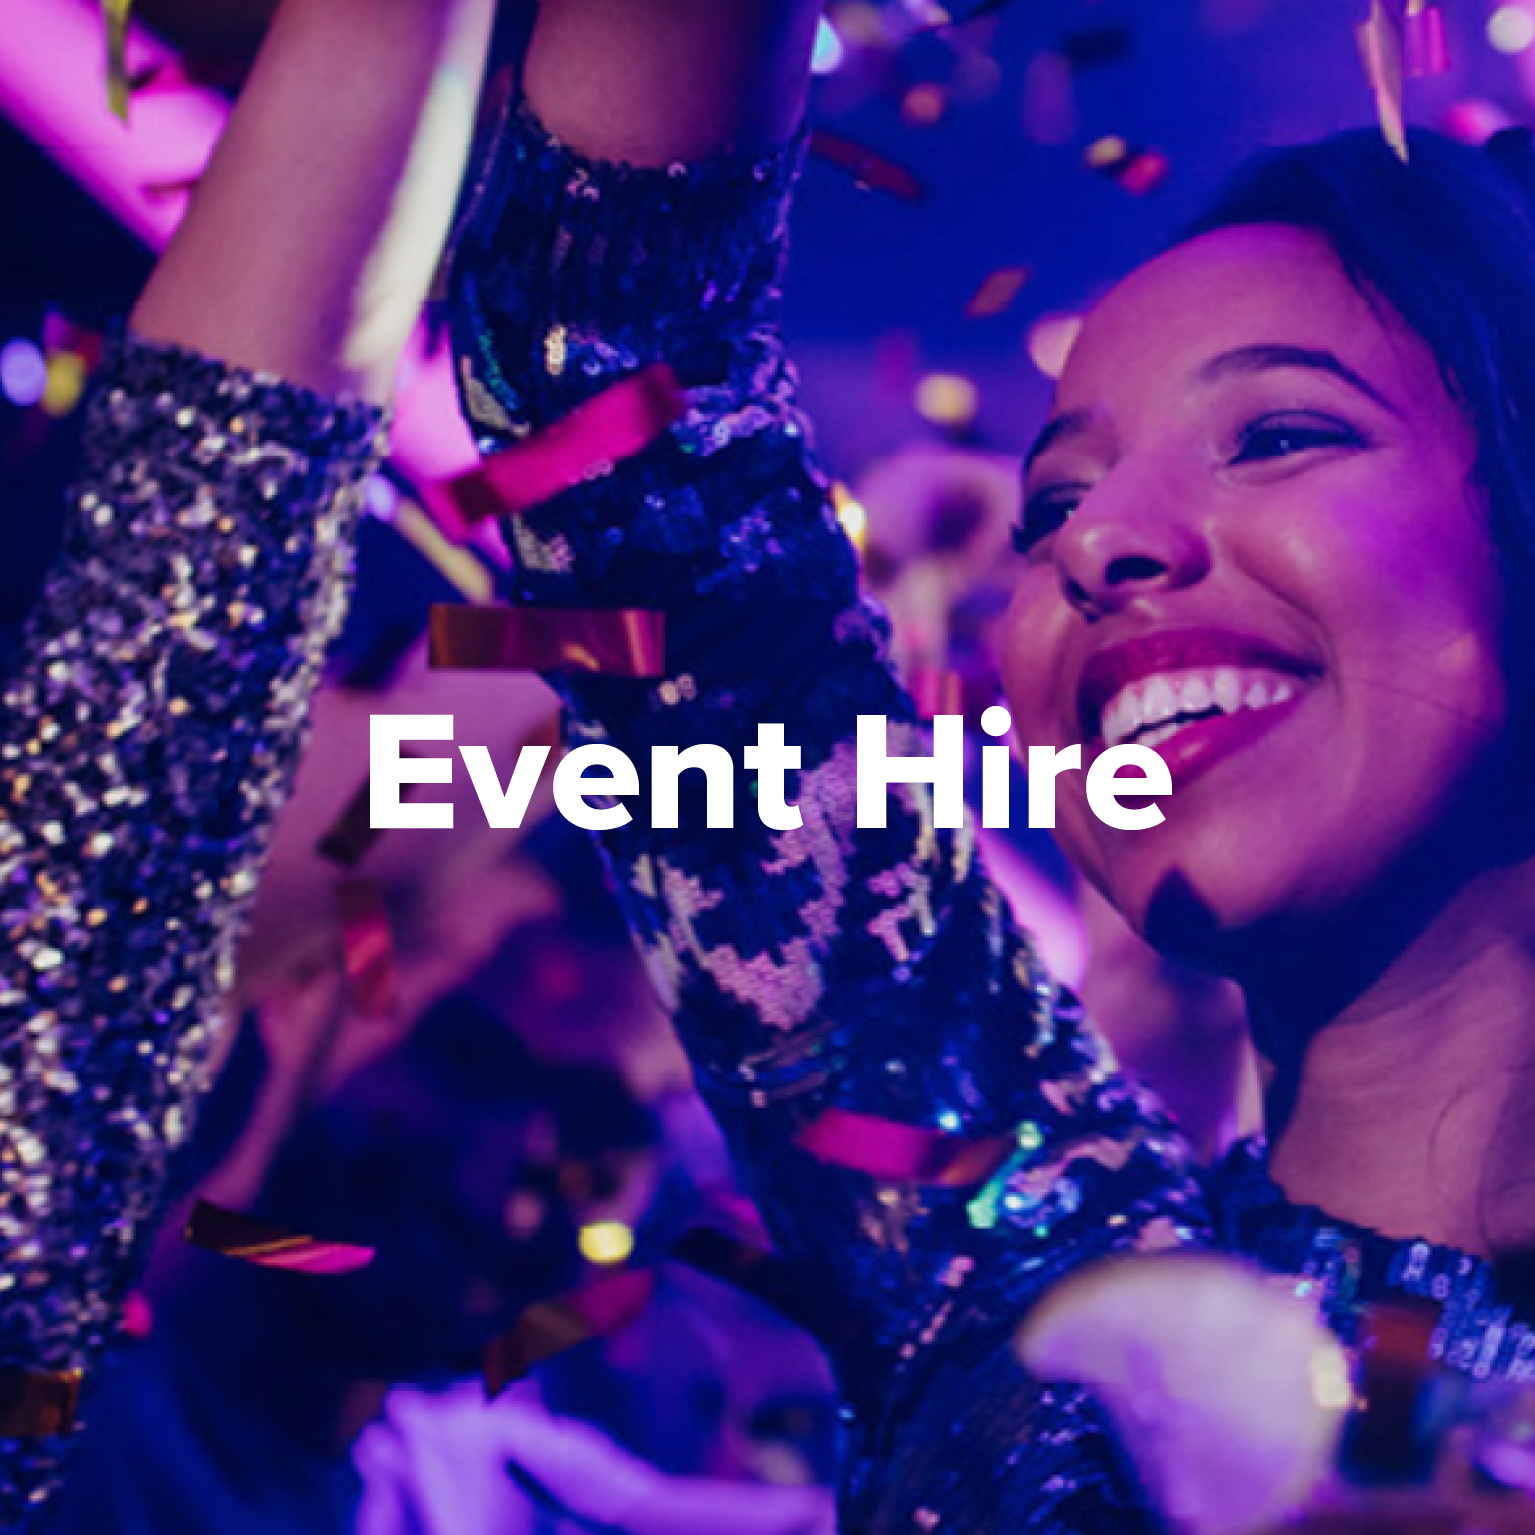 Event Hire at Rowers on Cooks River